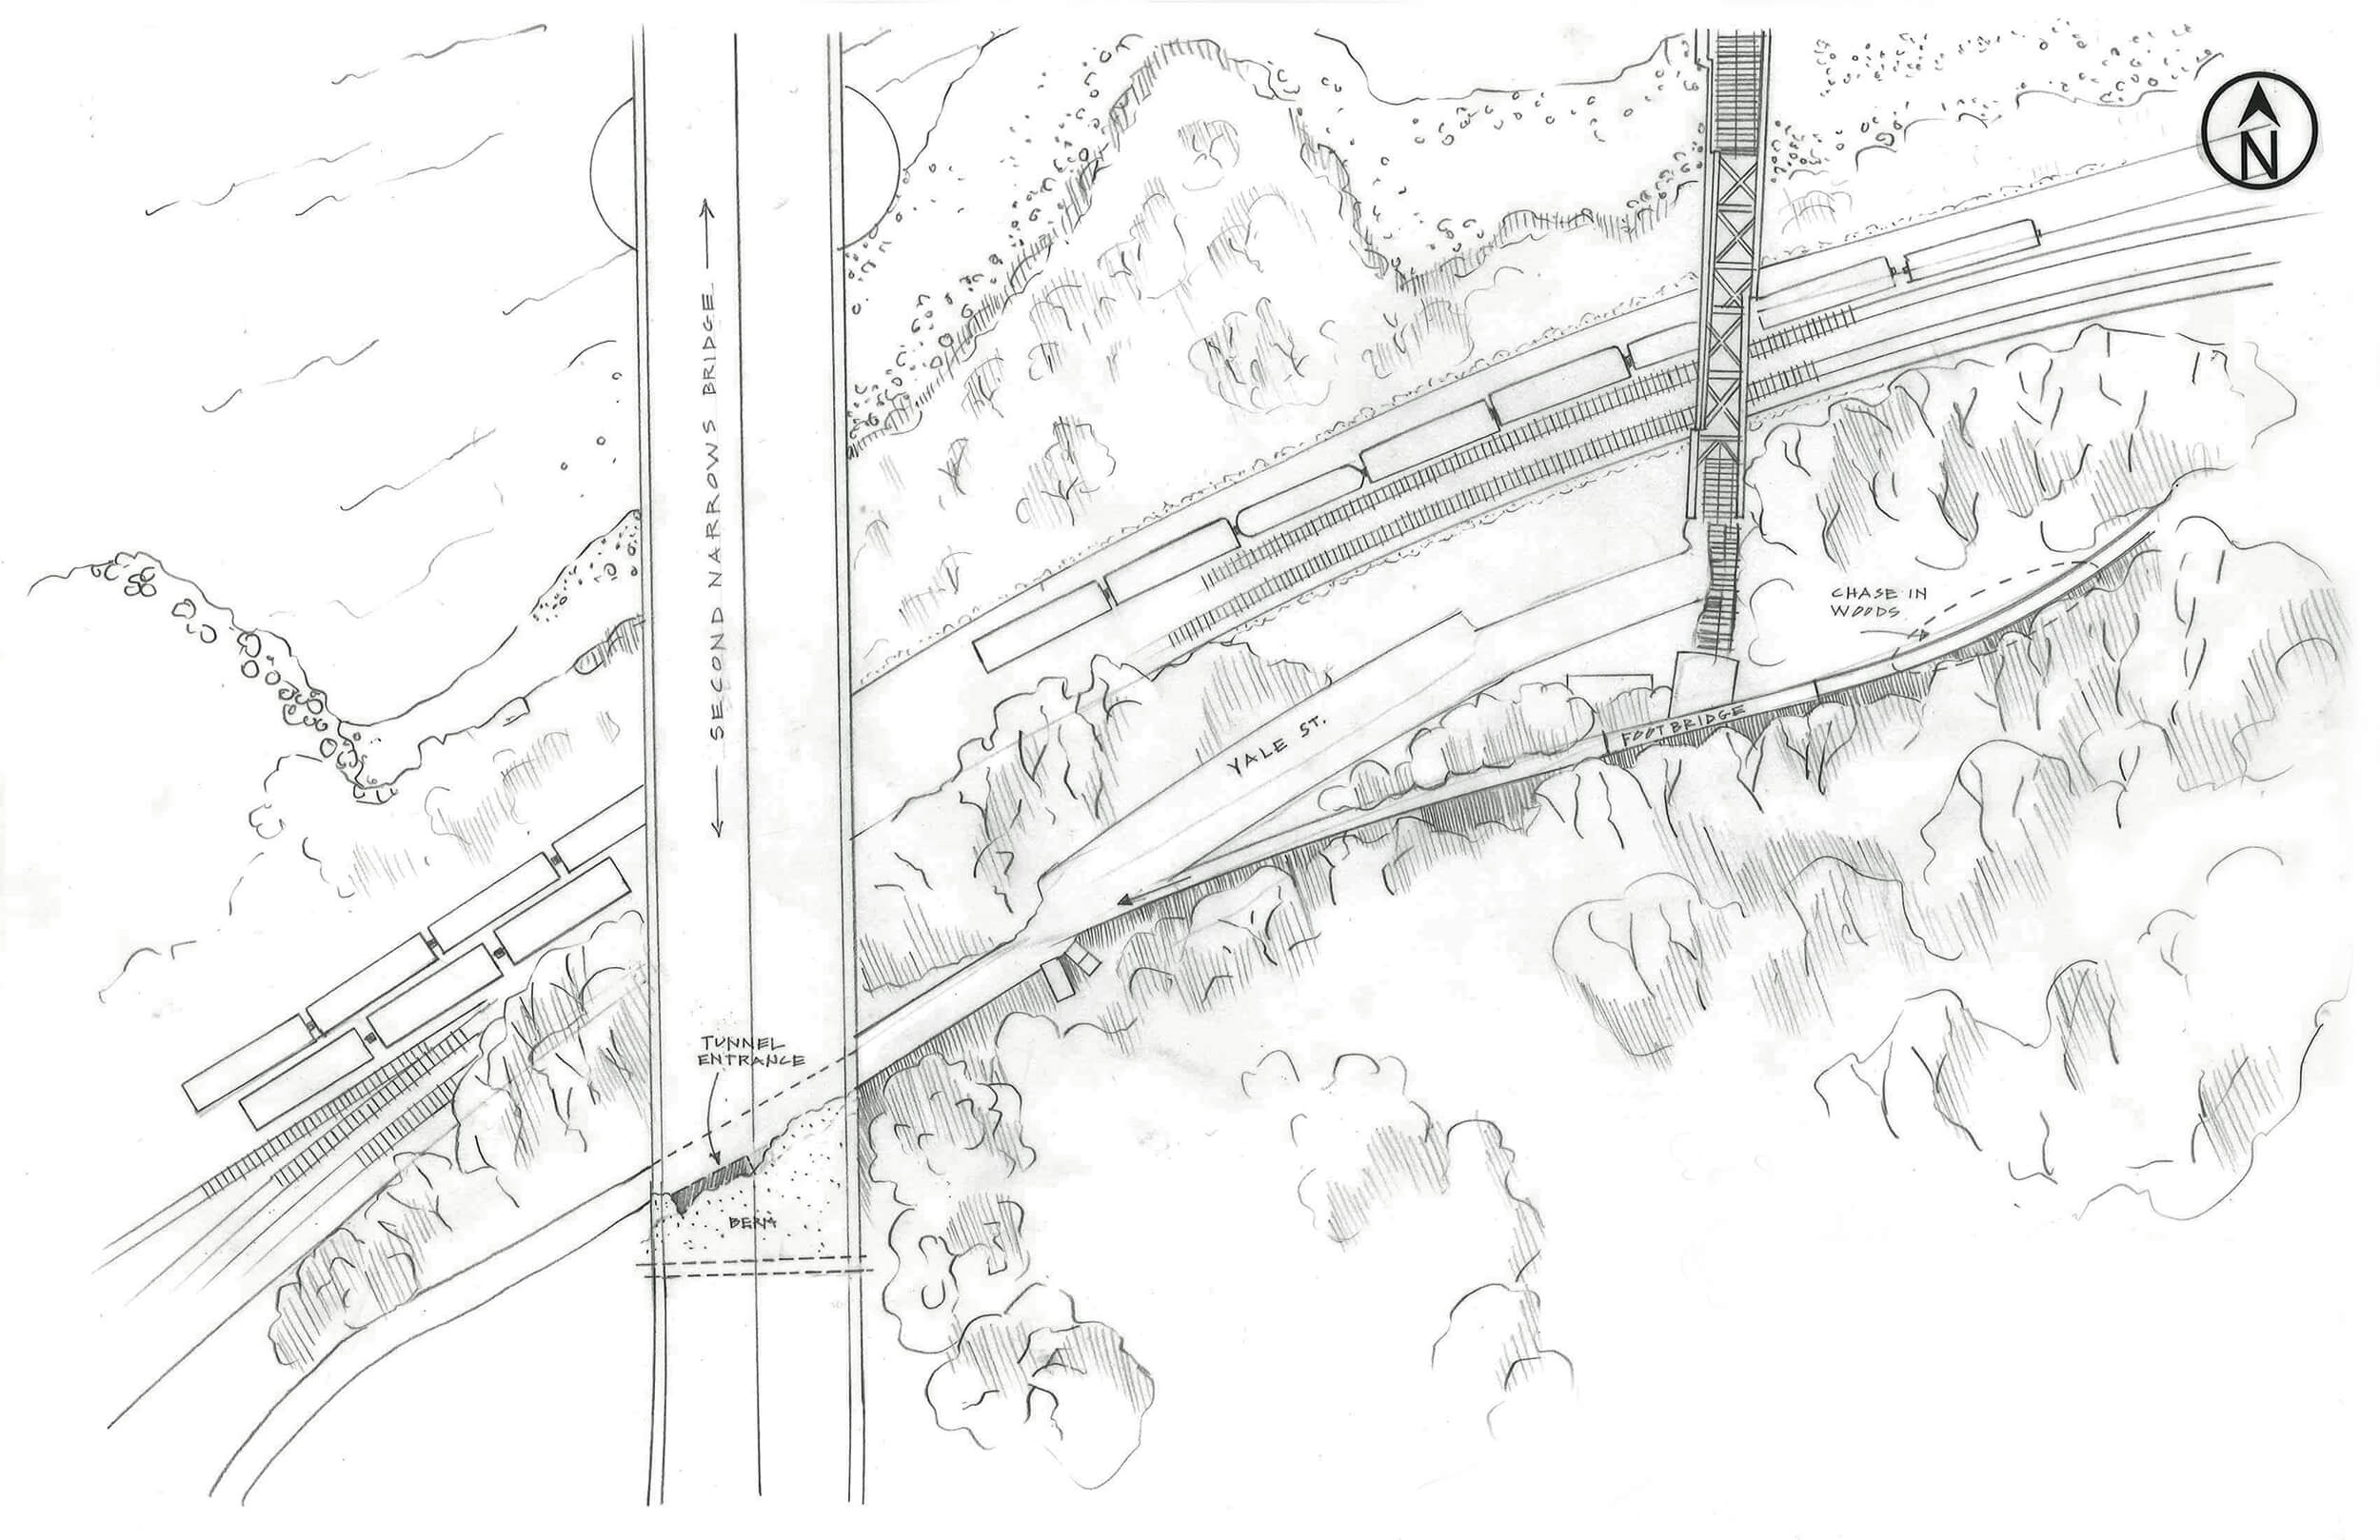 EXT TUNNEL AND CHASE IN WOODS PLAN